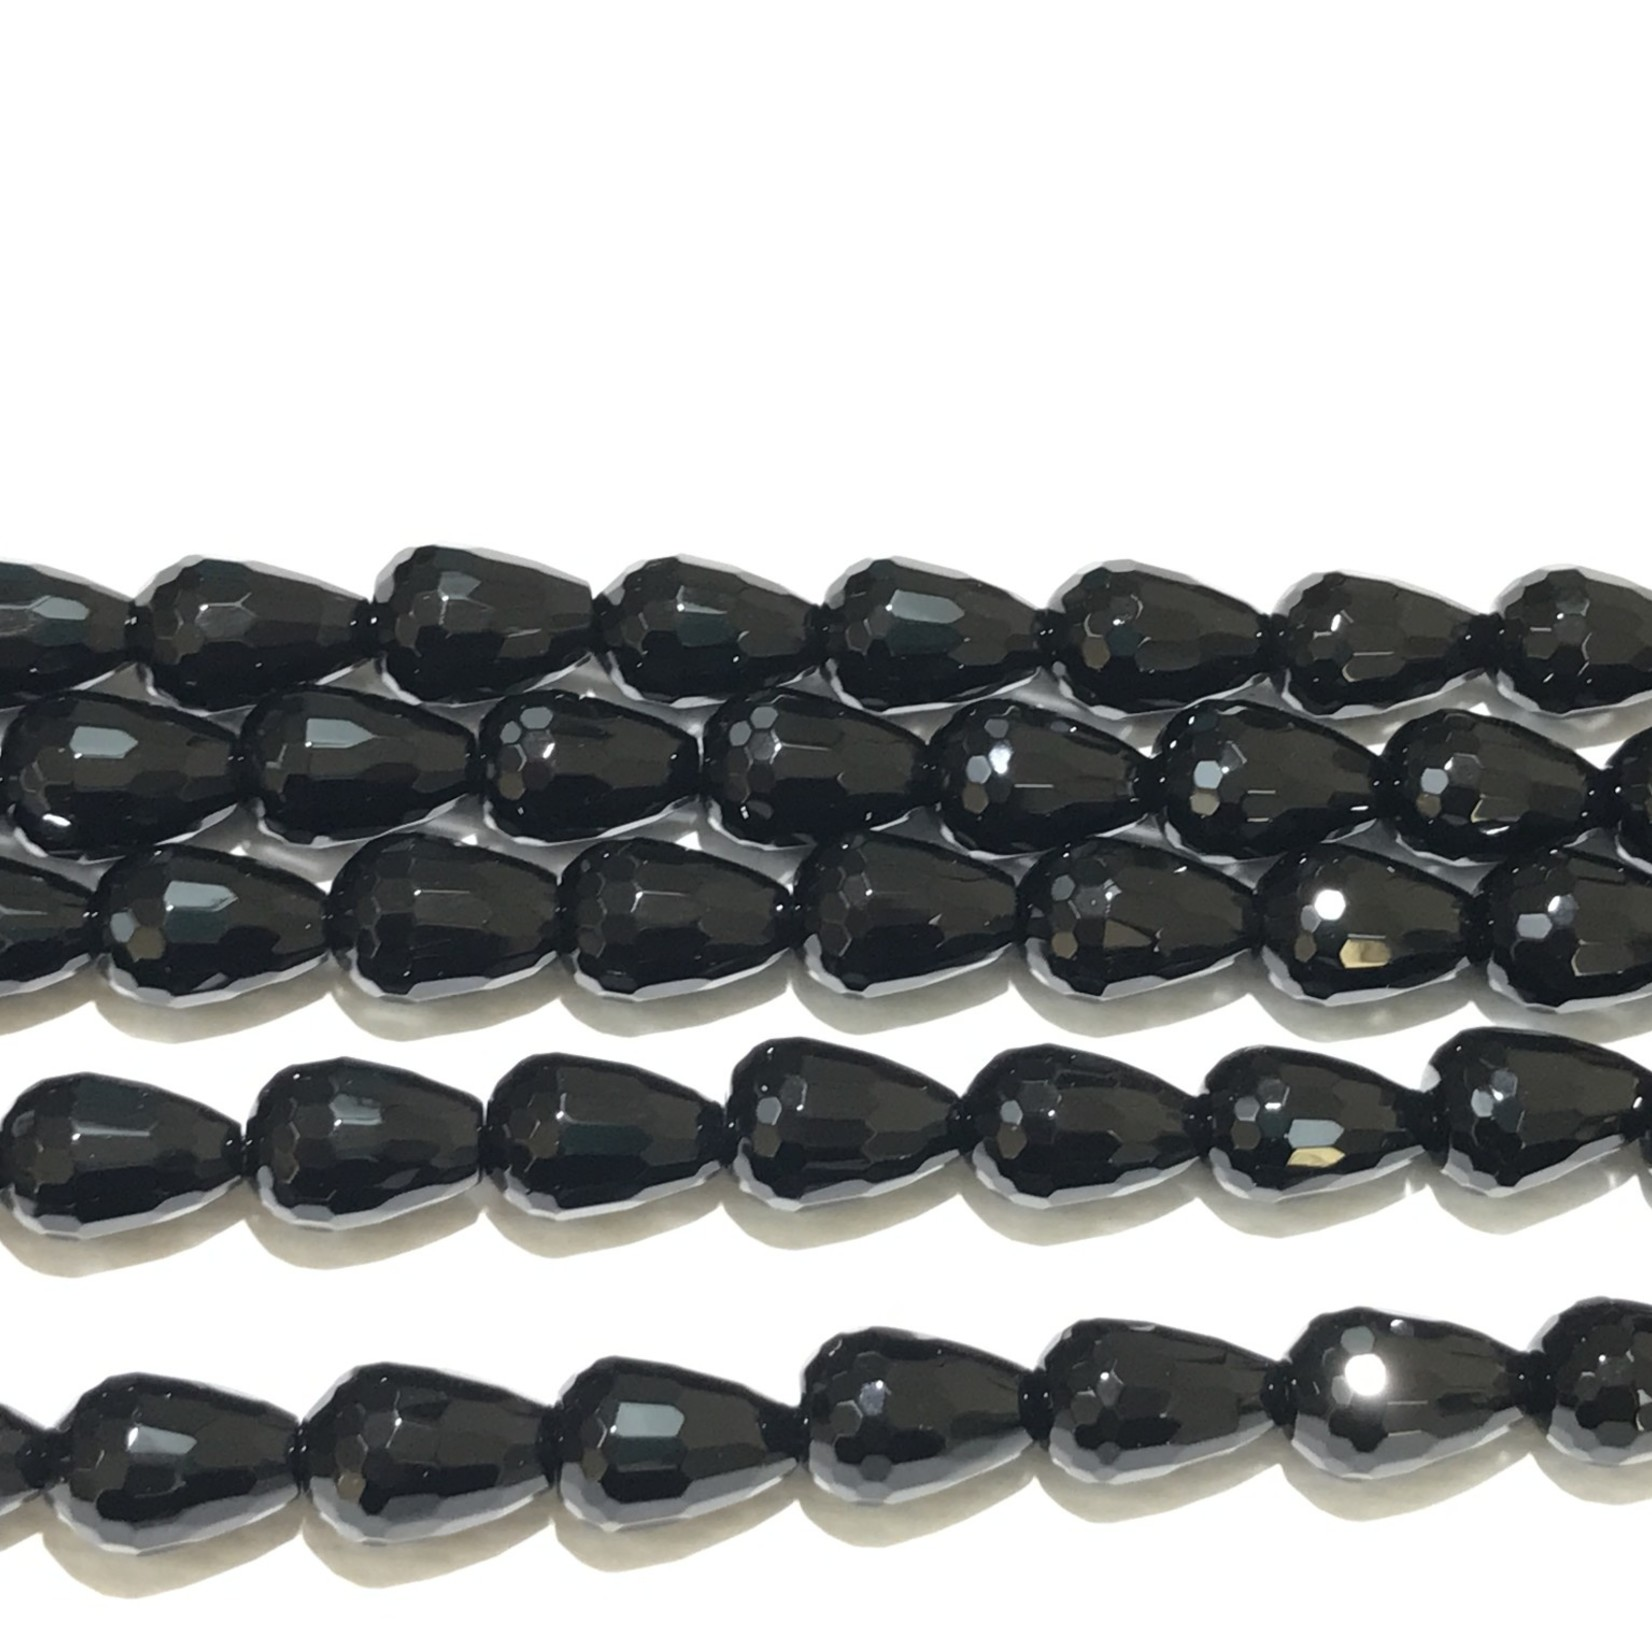 AGATE Dyed Black Teardrops Faceted 12x8mm